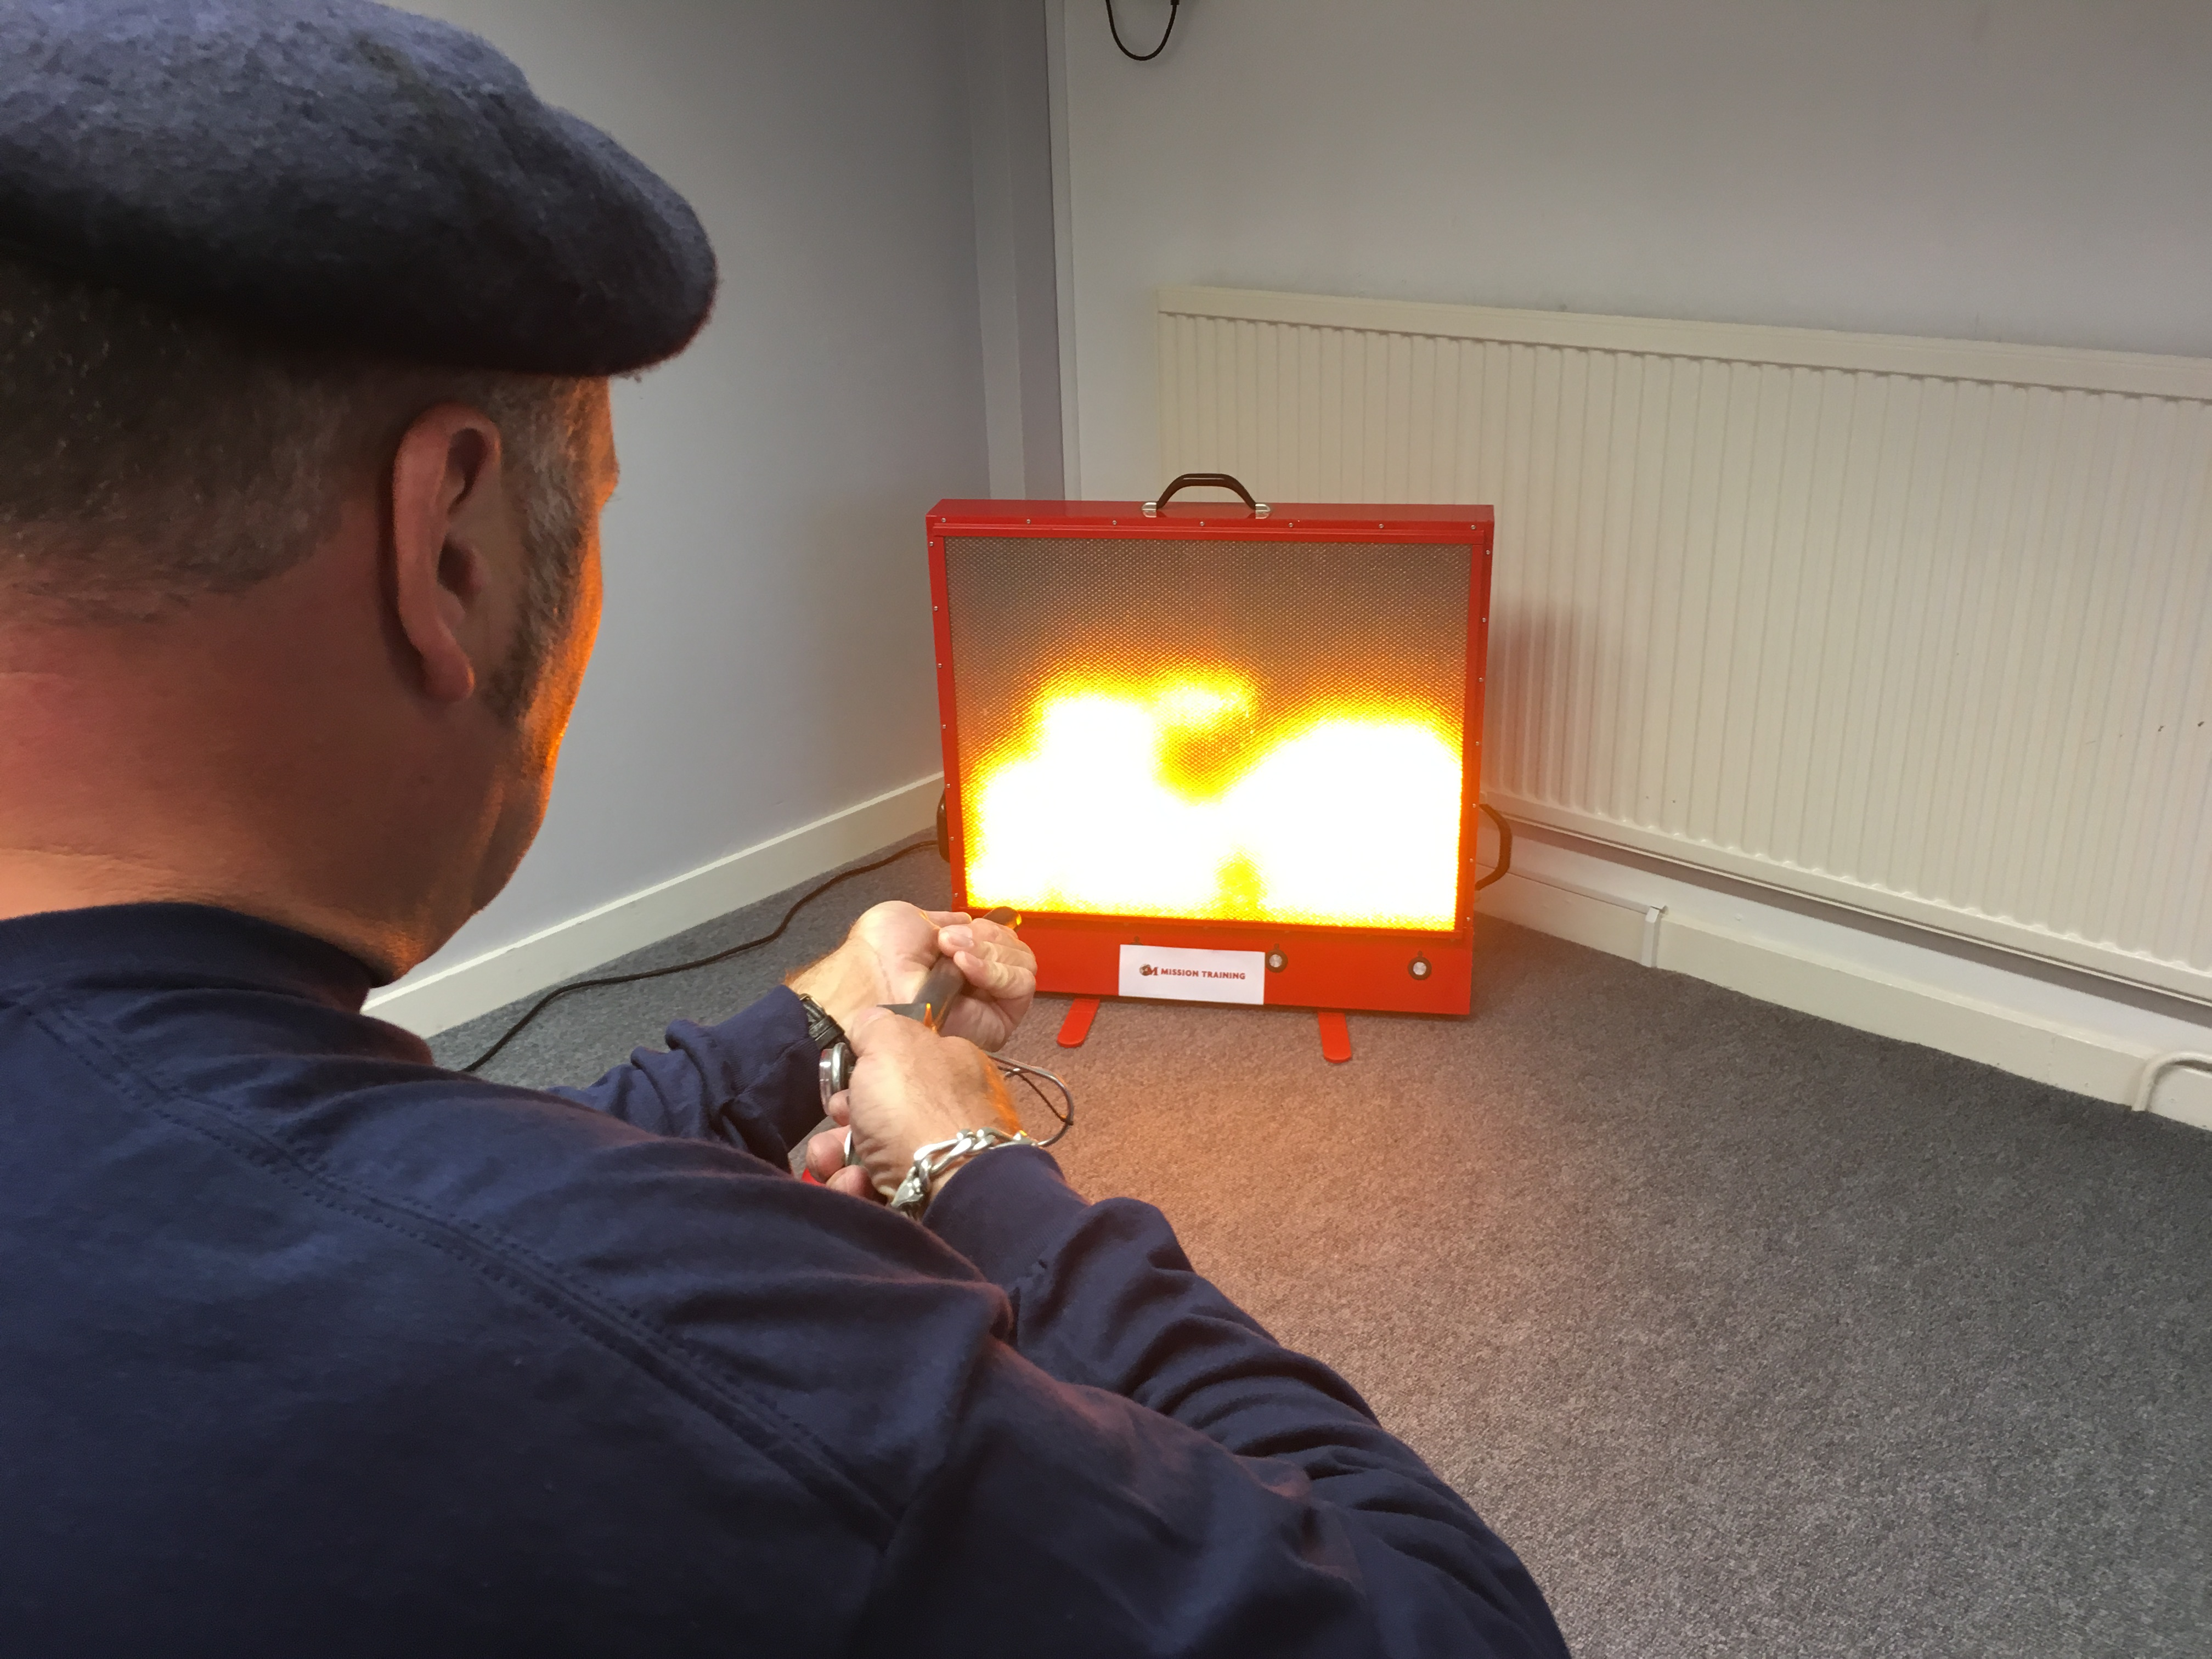 September 2016 - Maximus completes fire training on our Fire Extinguisher Simulator training